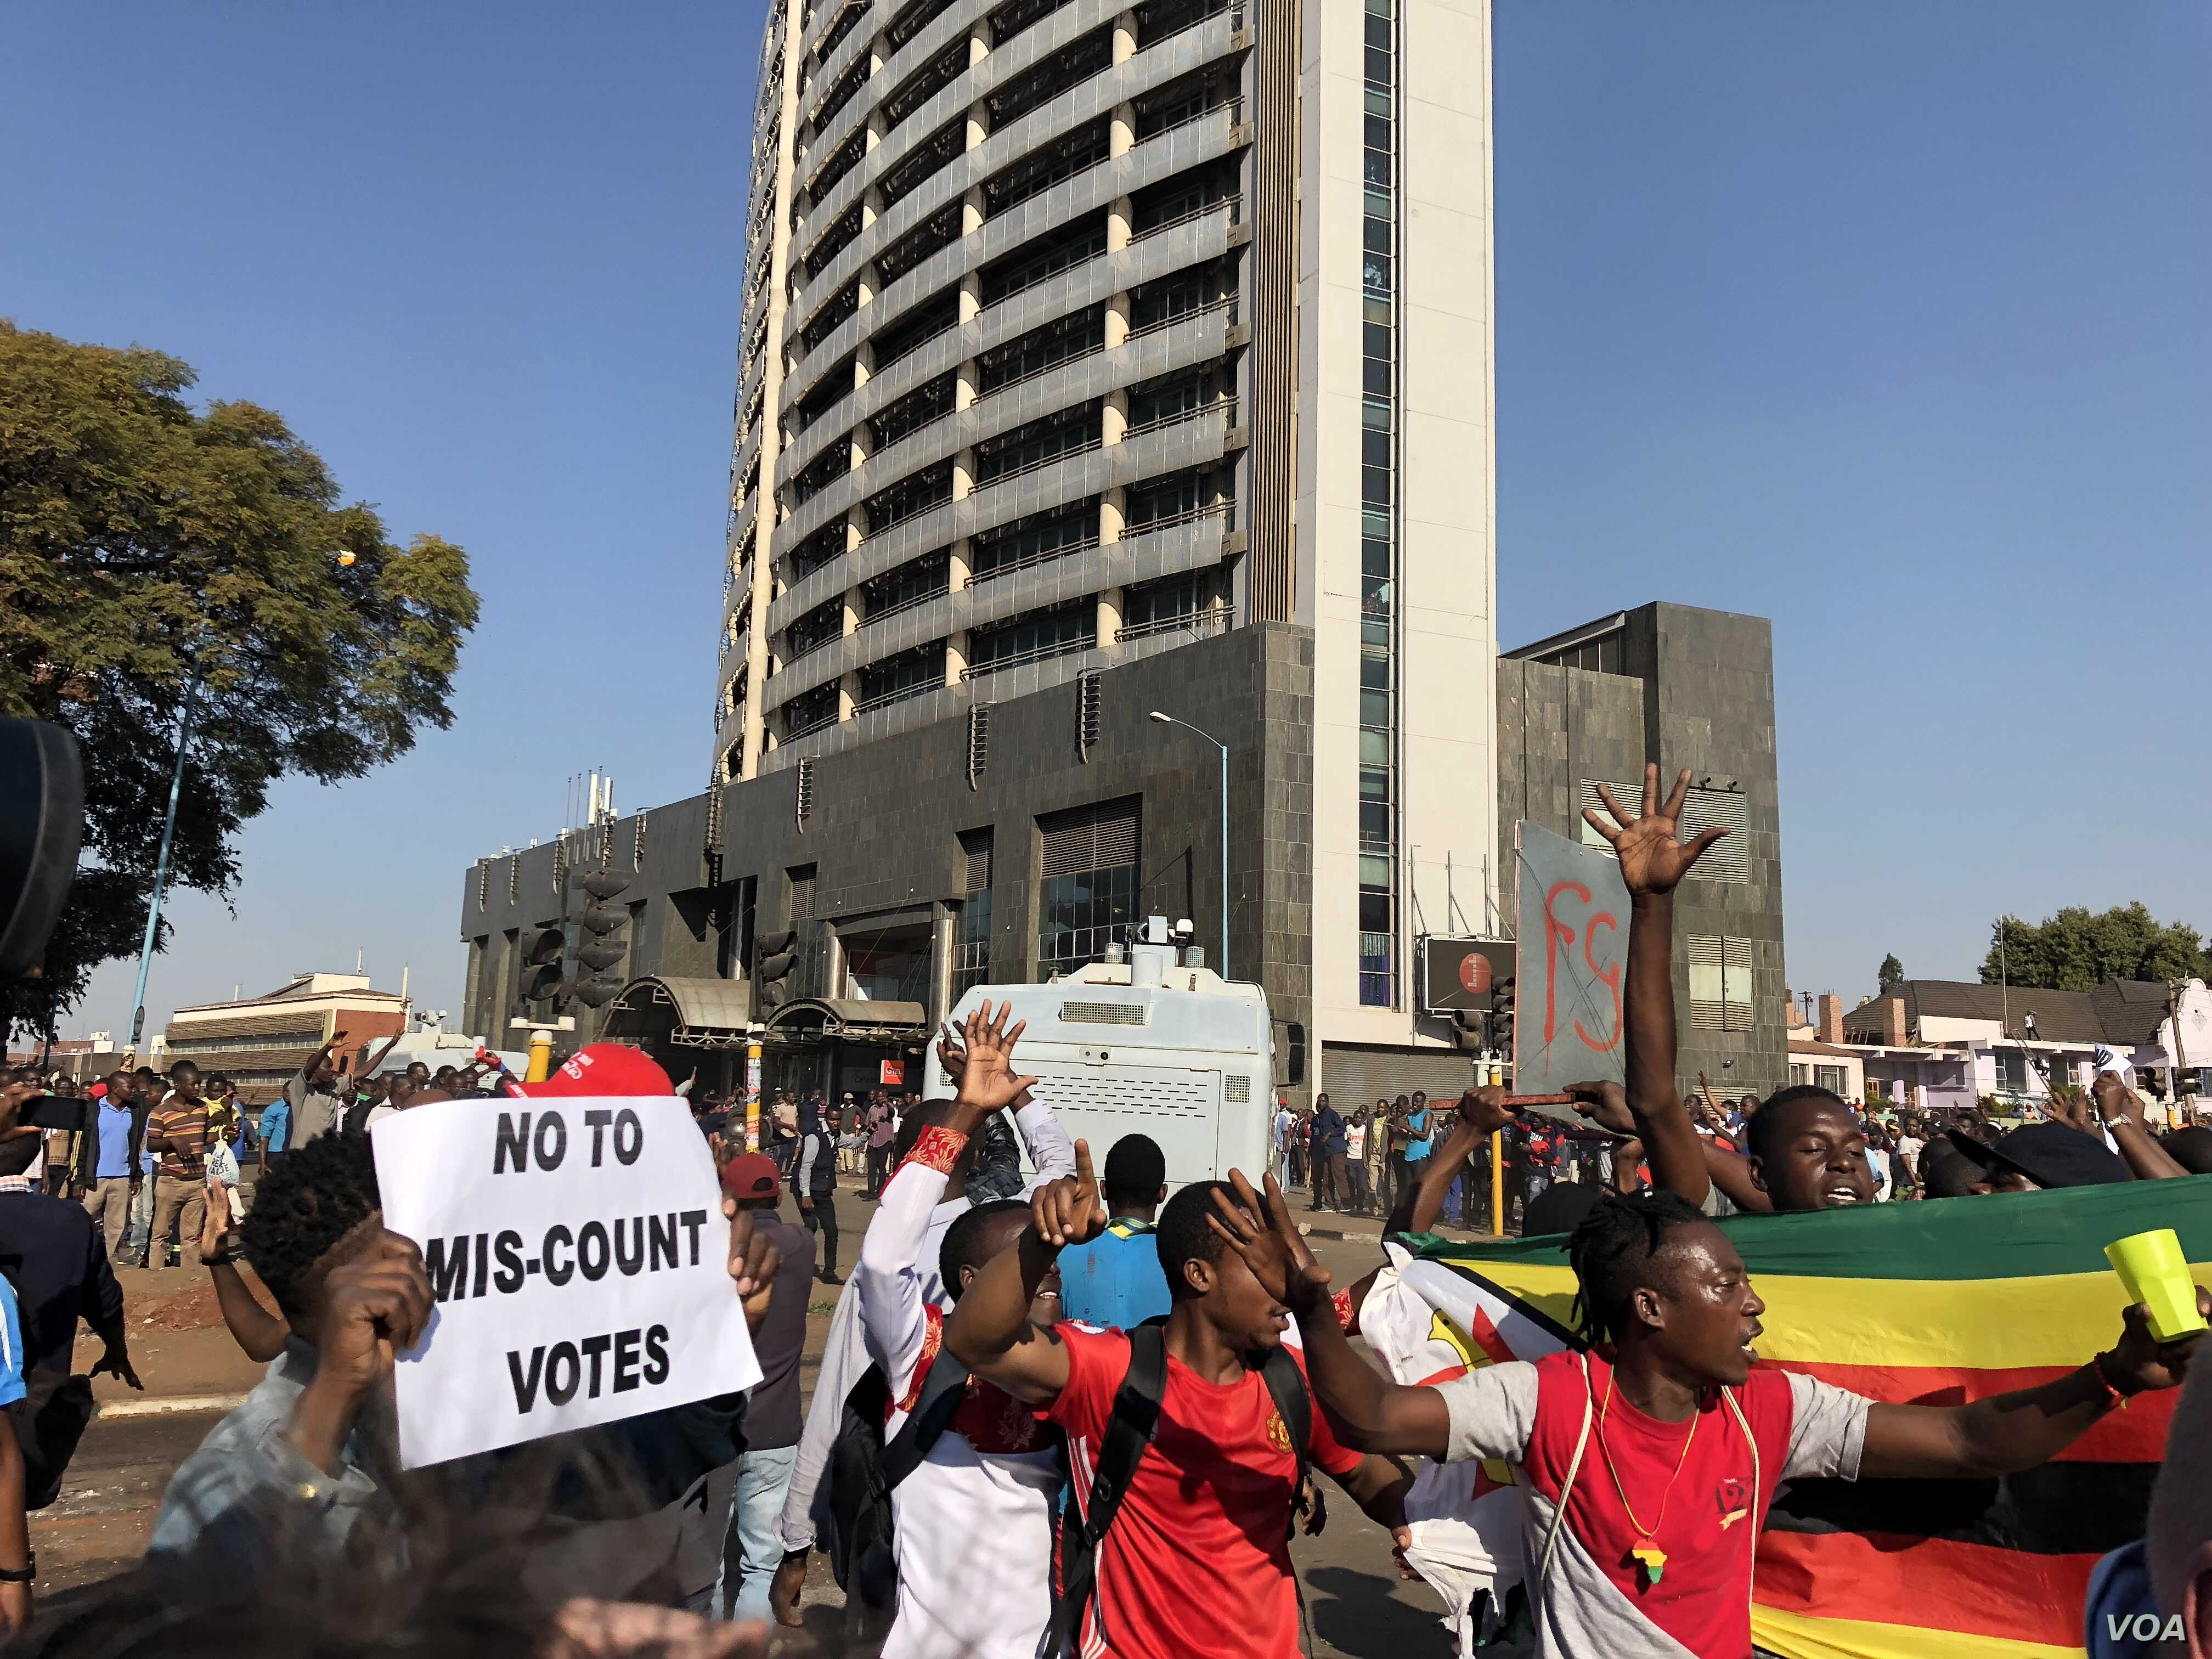 Opposition protested in Harare (08/0i/2018) to push the Zimbabwe Electoral Commission to release credible polls results. The opposition has since refused to accept the official results which the ruling Zanu PF was declared winner (C. Mavhunga/VOA)